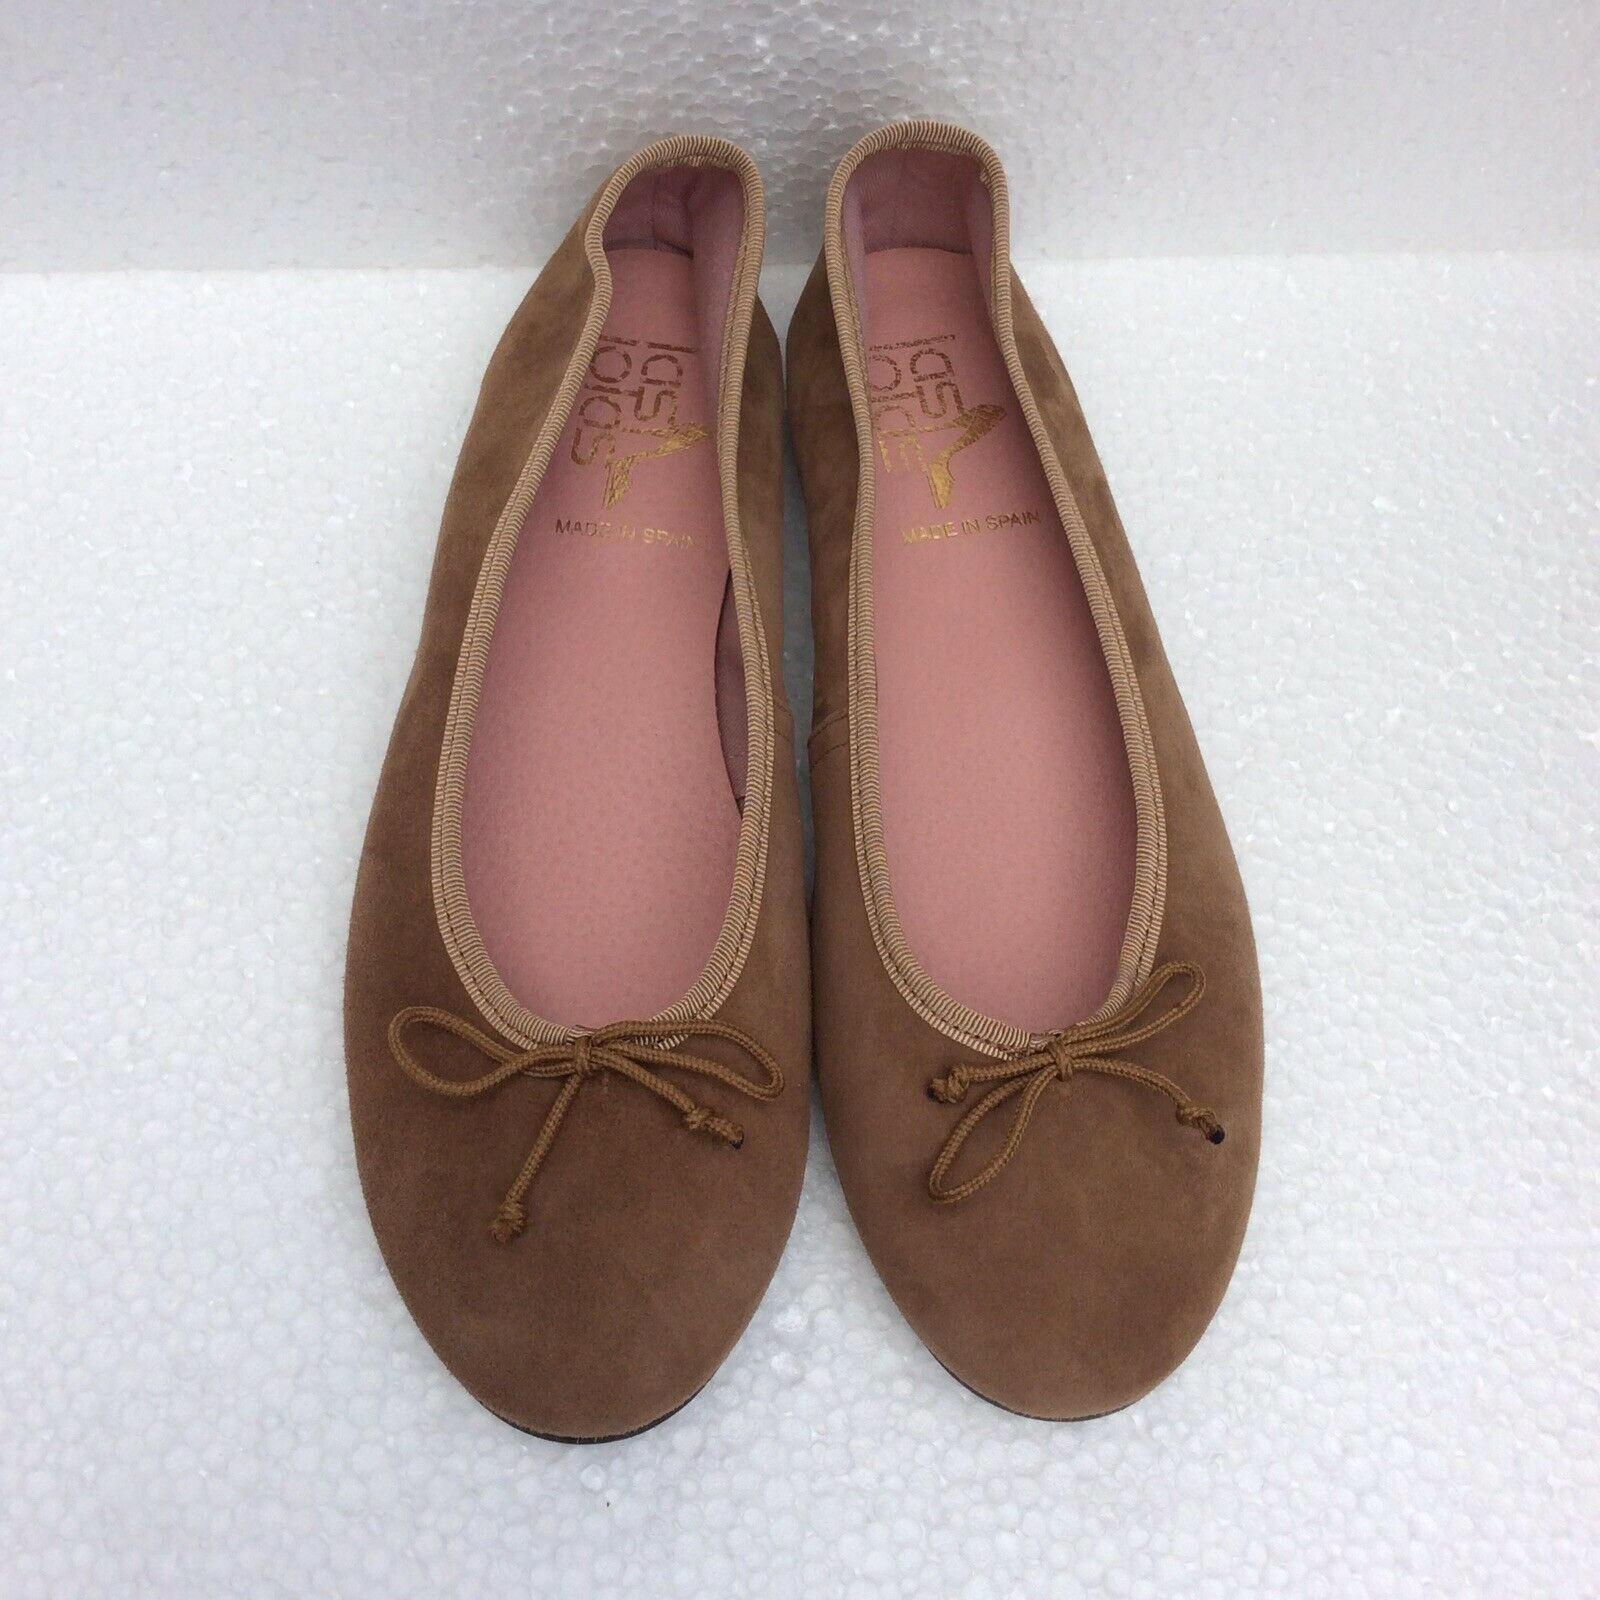 Brand New Las Lola Sissy Classique En Daim Marron Ballerines Plates Chaussures Taille 39